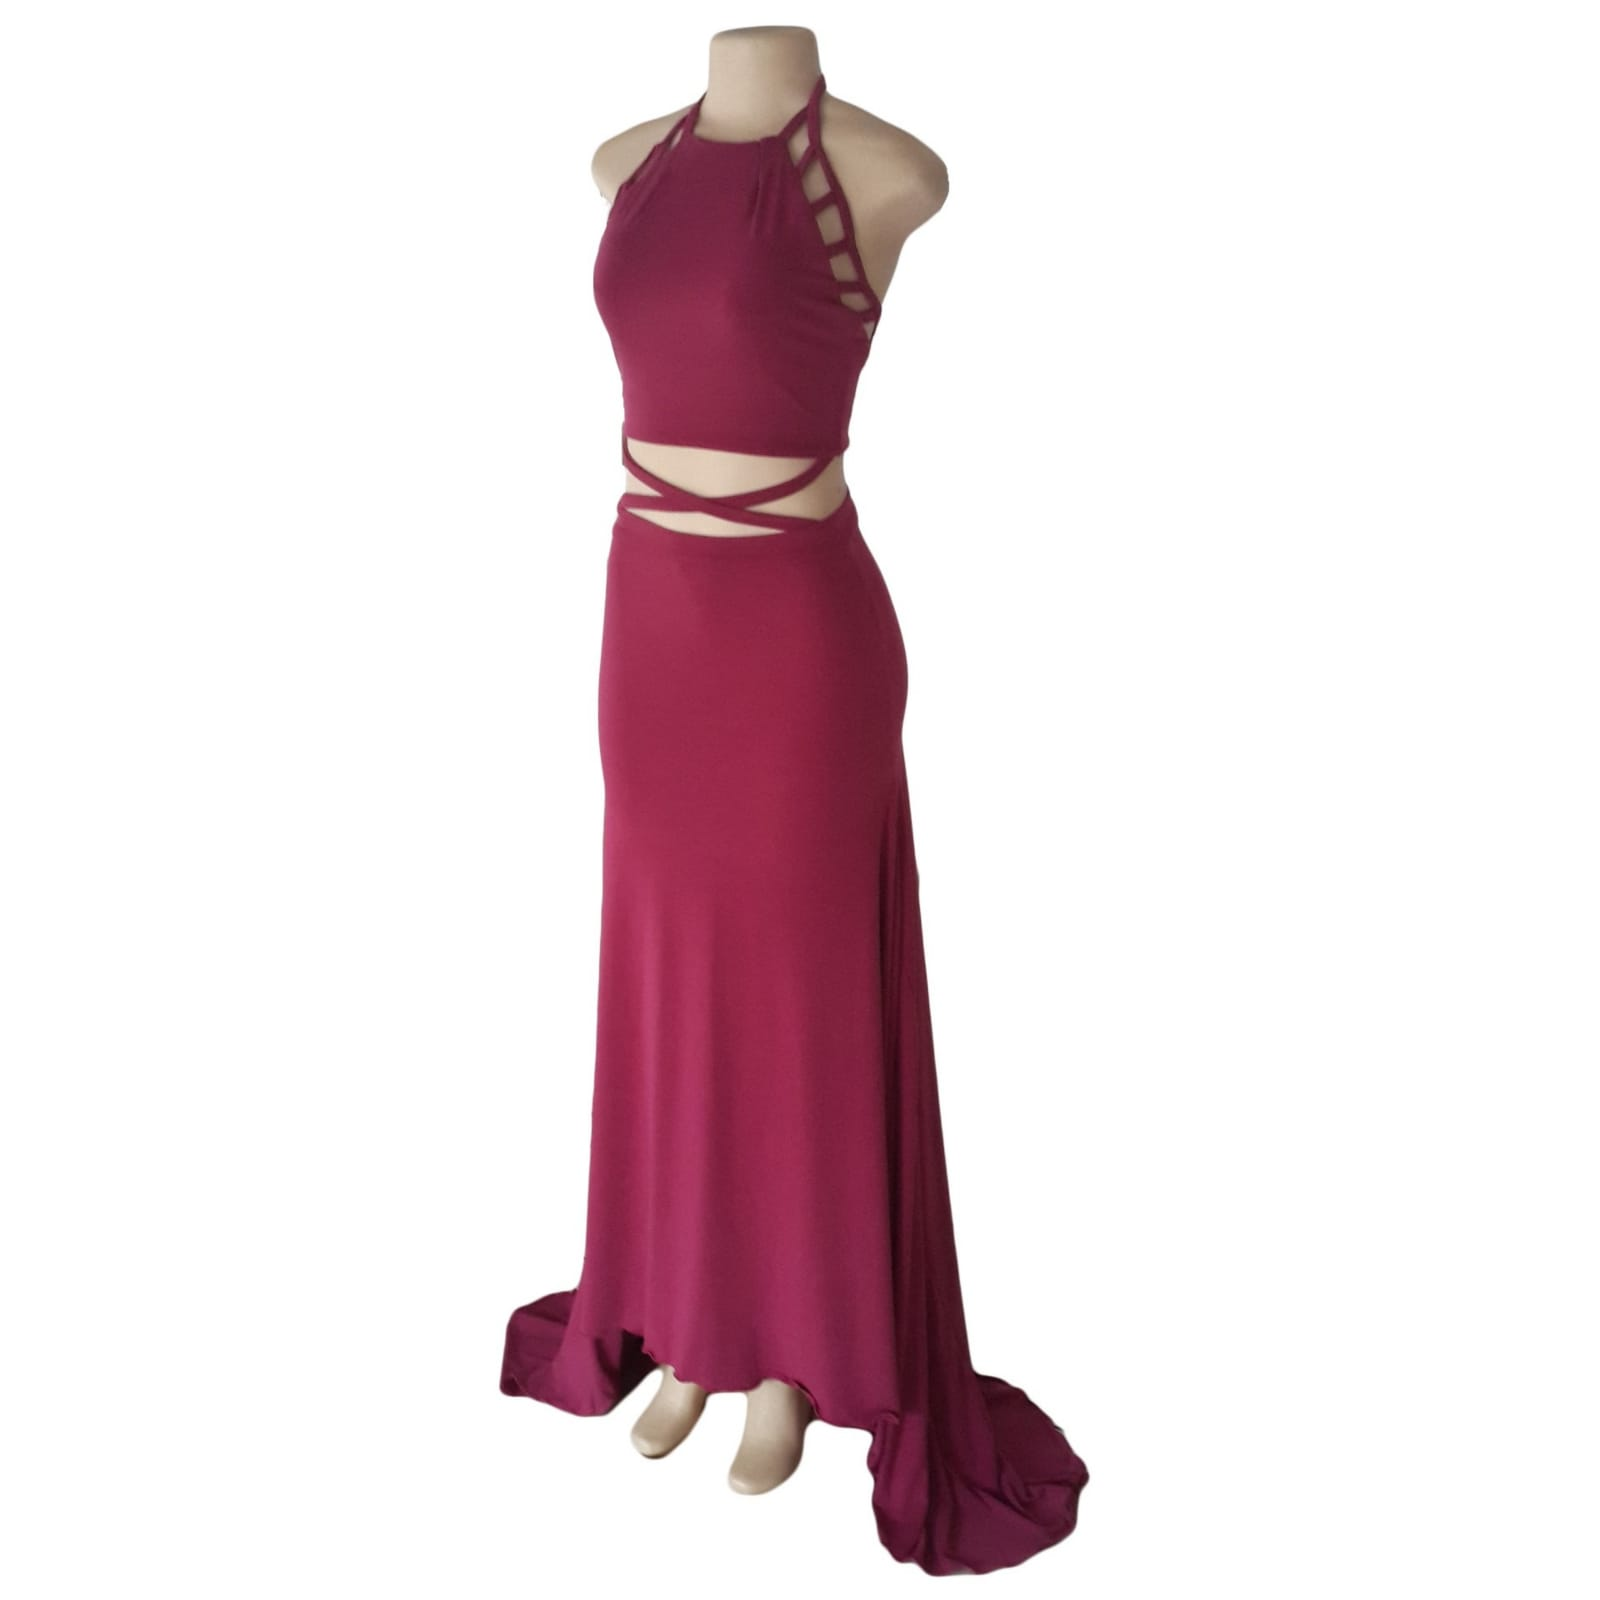 2 piece plum prom dance dress 6 2 piece plum prom dance dress. Halter neck crop top. Straps from the crop top create a cross that joins to the skirt. Skirt fitted till the hip and then very flowy with a long, wide train.